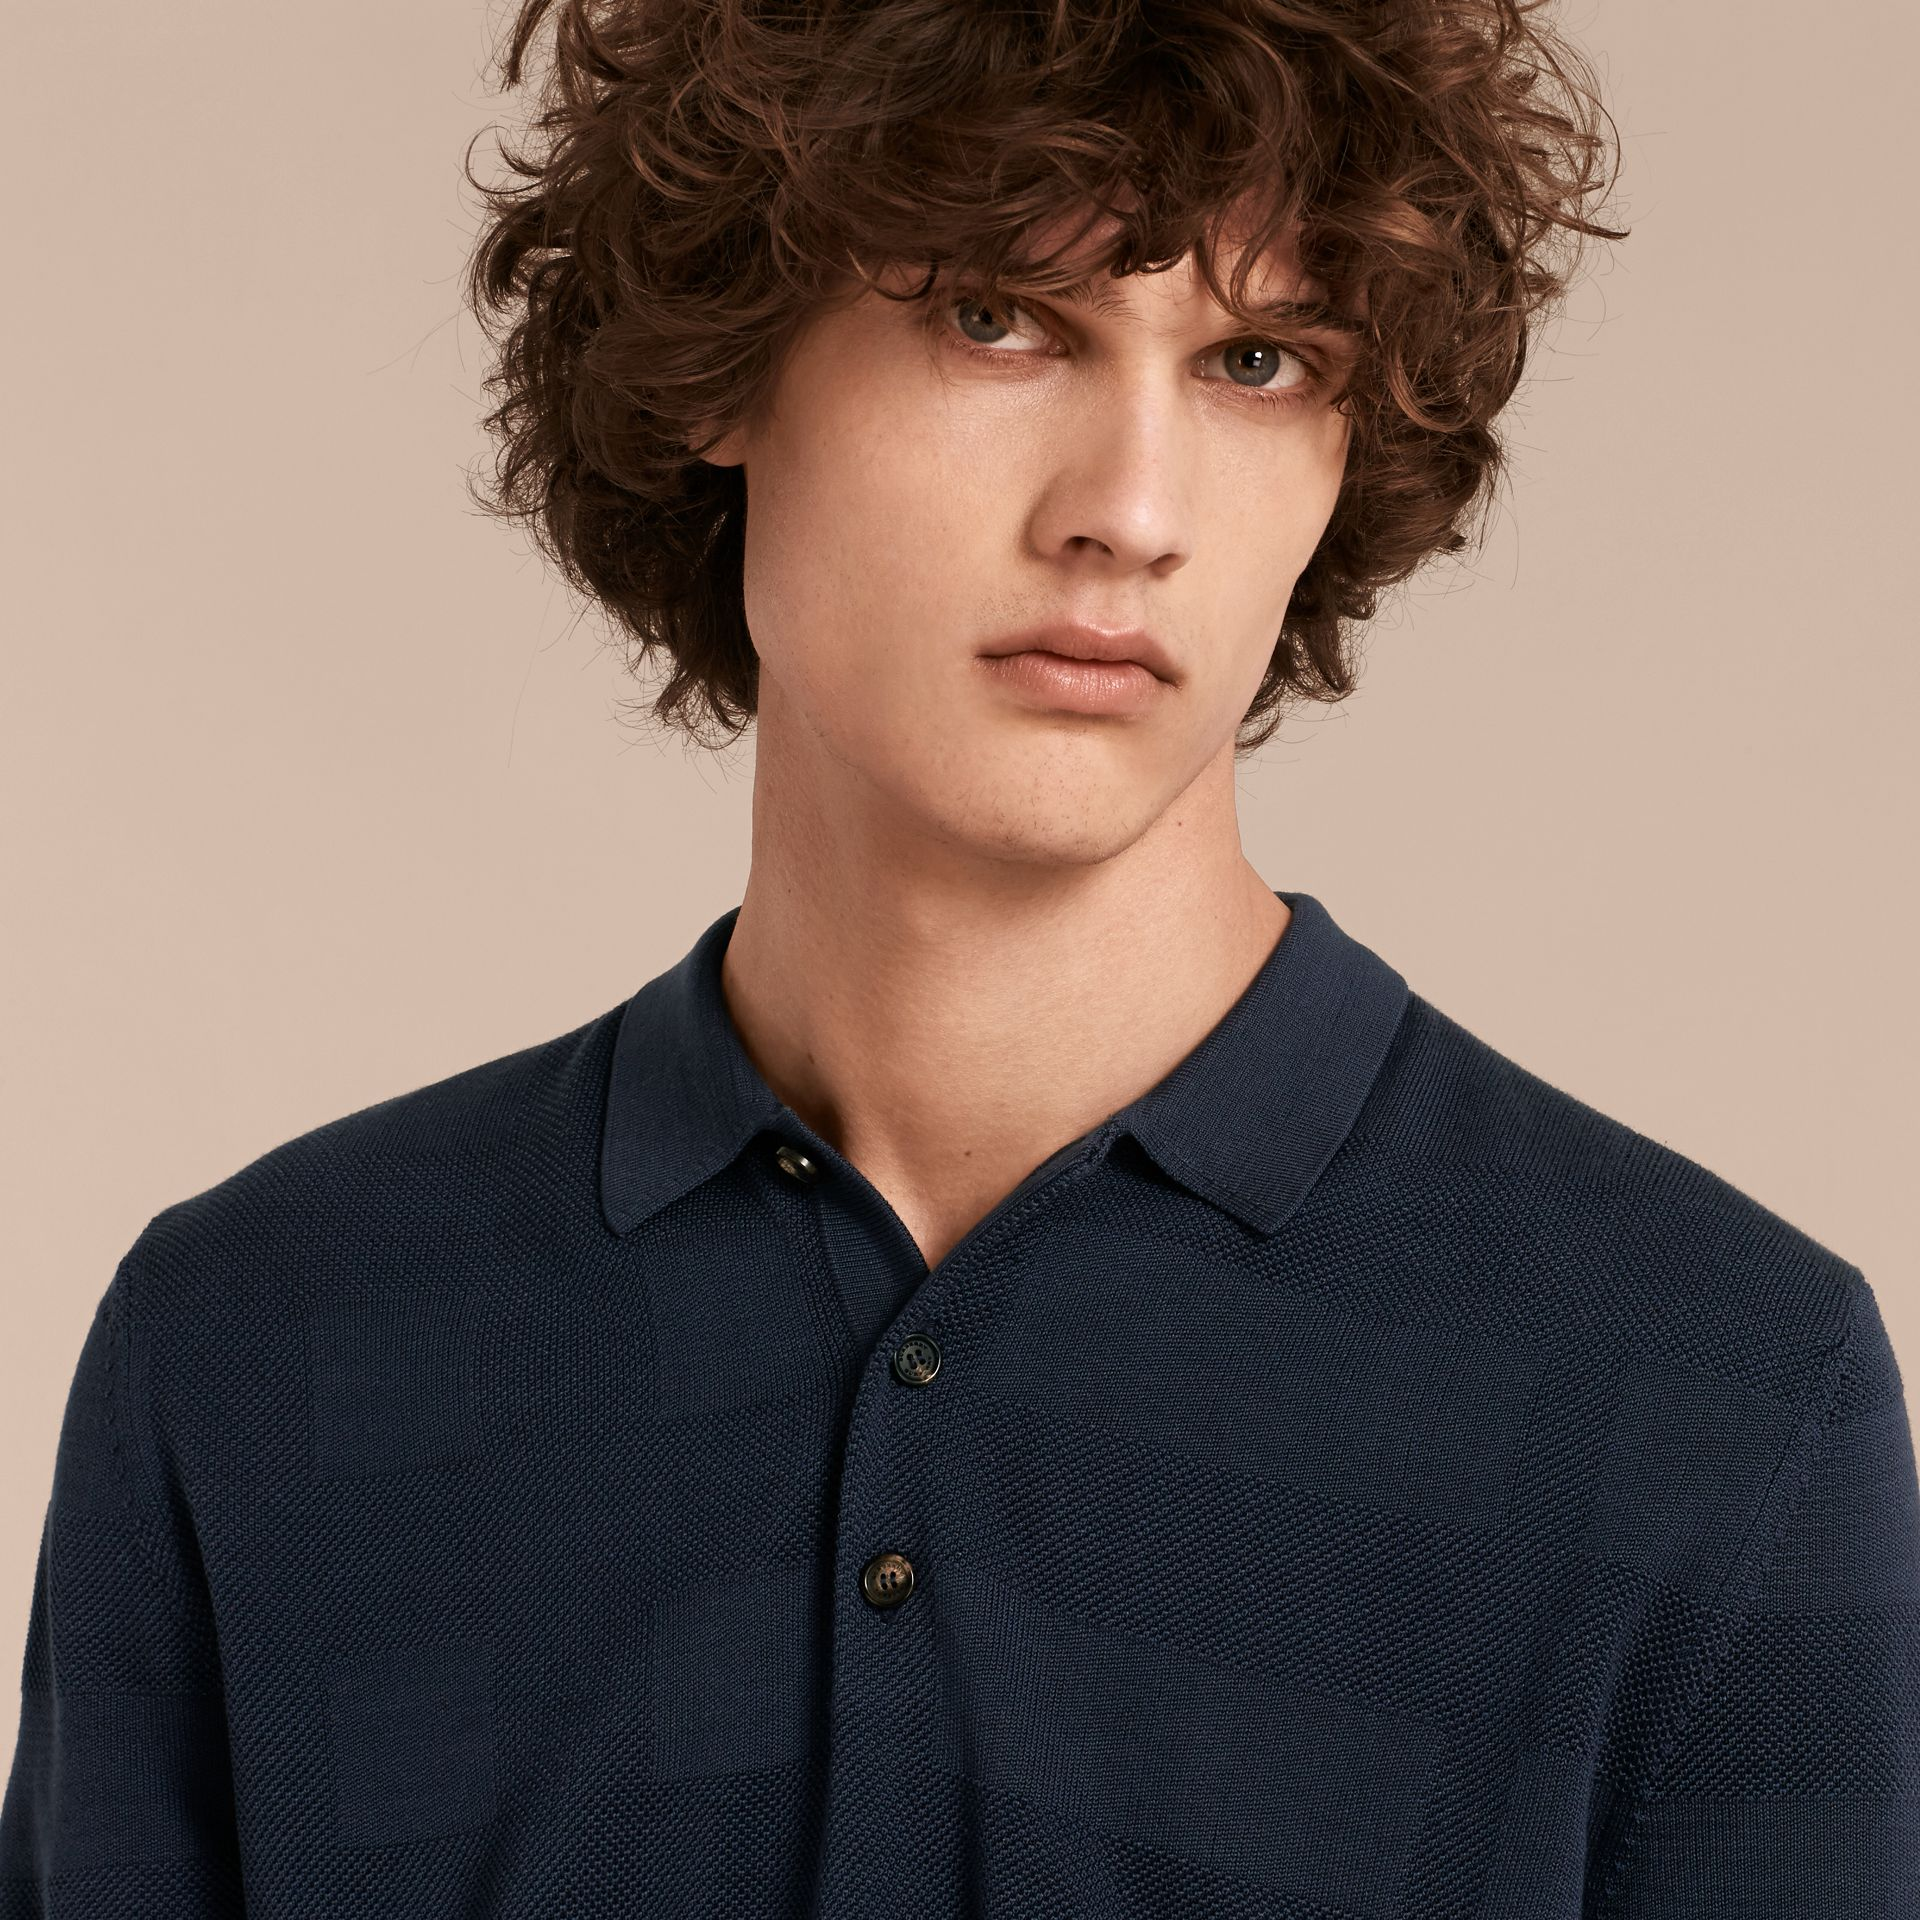 Check Jacquard Piqué Silk Cotton Polo Shirt in Navy - Men | Burberry - gallery image 4